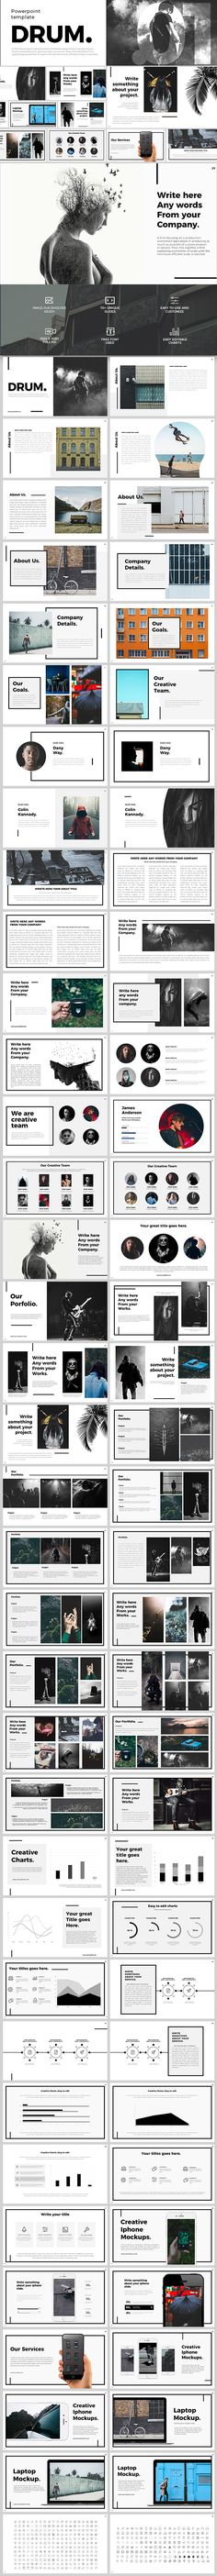 Drum Powerpoint Template - #PowerPoint Templates #Presentation Templates